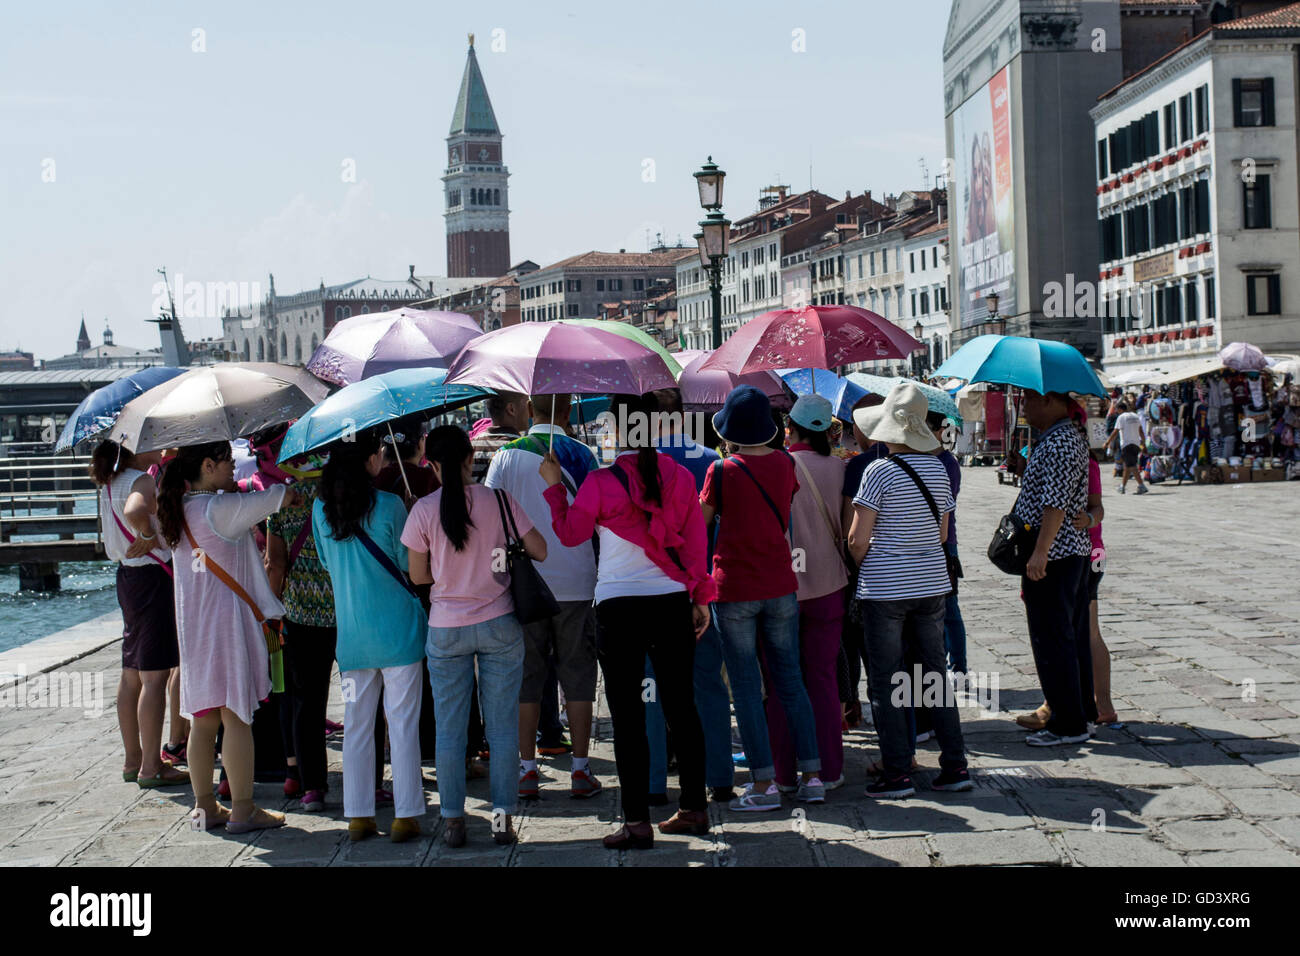 Venice, ITALY. 11 July, 2016. people try to cool off during the strong heat wave that hit Venice these days Credit: - Stock Image